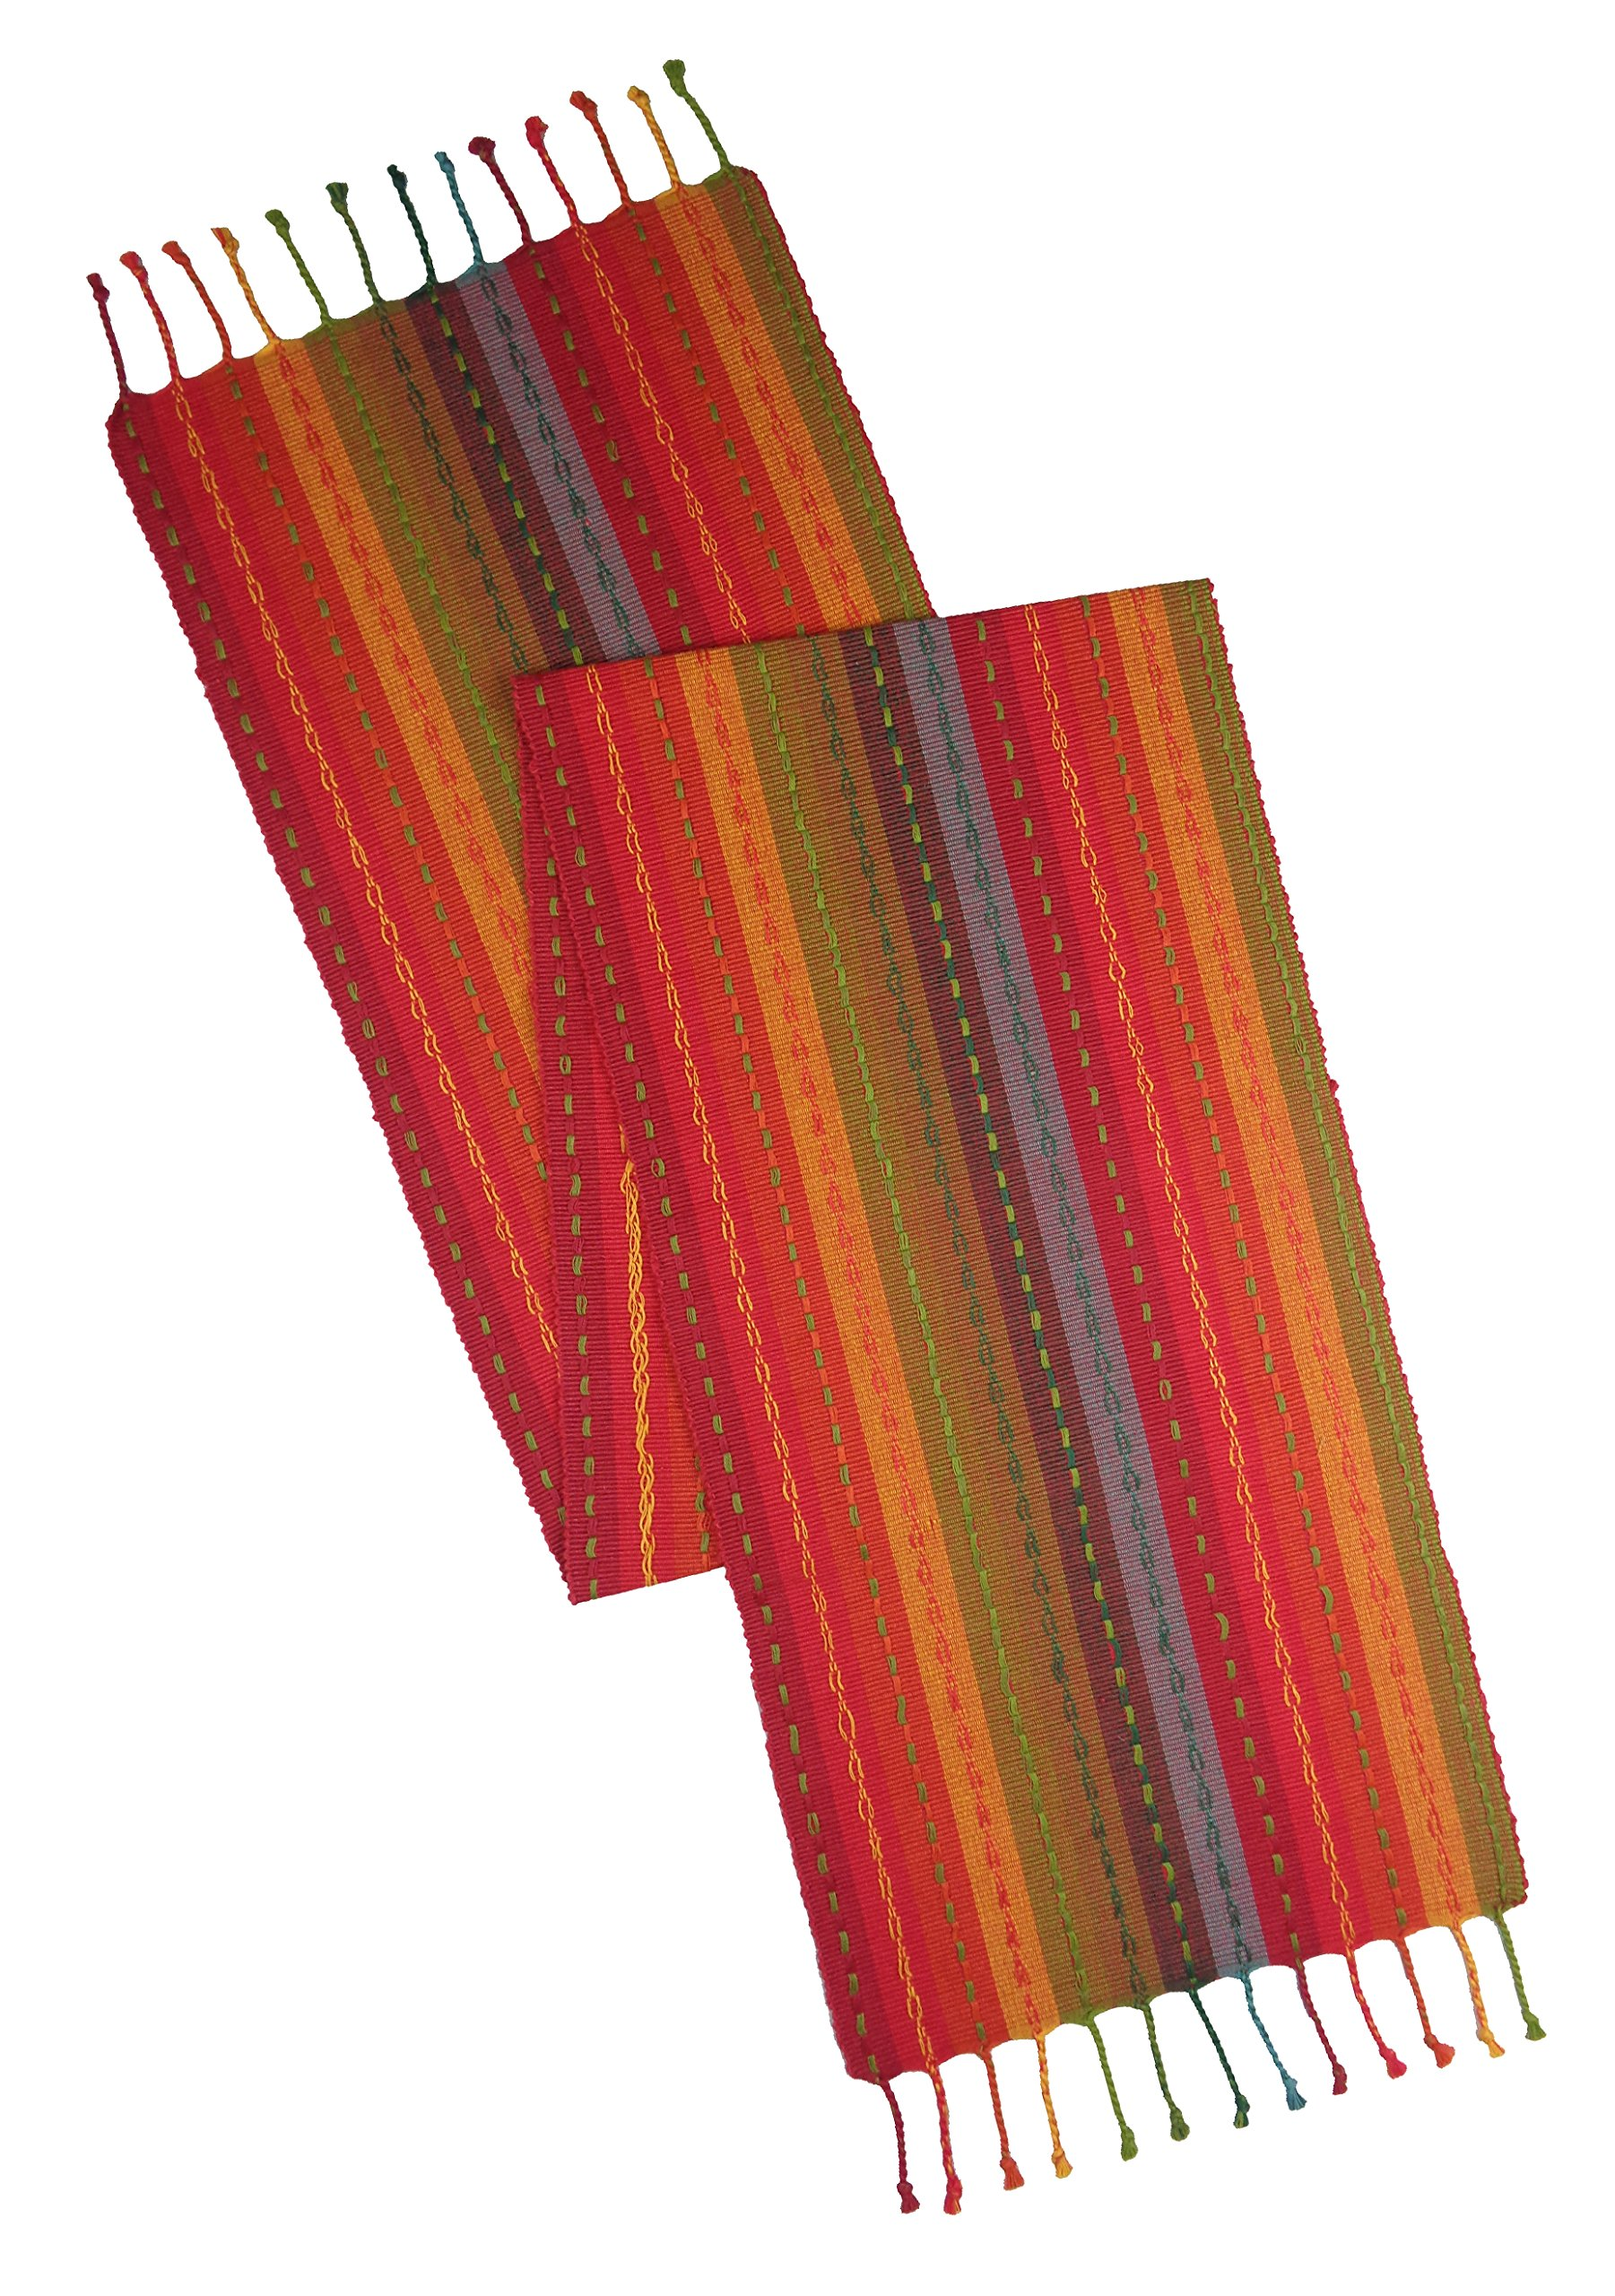 Cotton Craft - Salsa Stripe Hand Knotted Fringe Table Runner - 14x90 - Red Multi - 100% Cotton - Hand Woven by Skilled artisans - Unique Hand Knotted Decorative Fringe